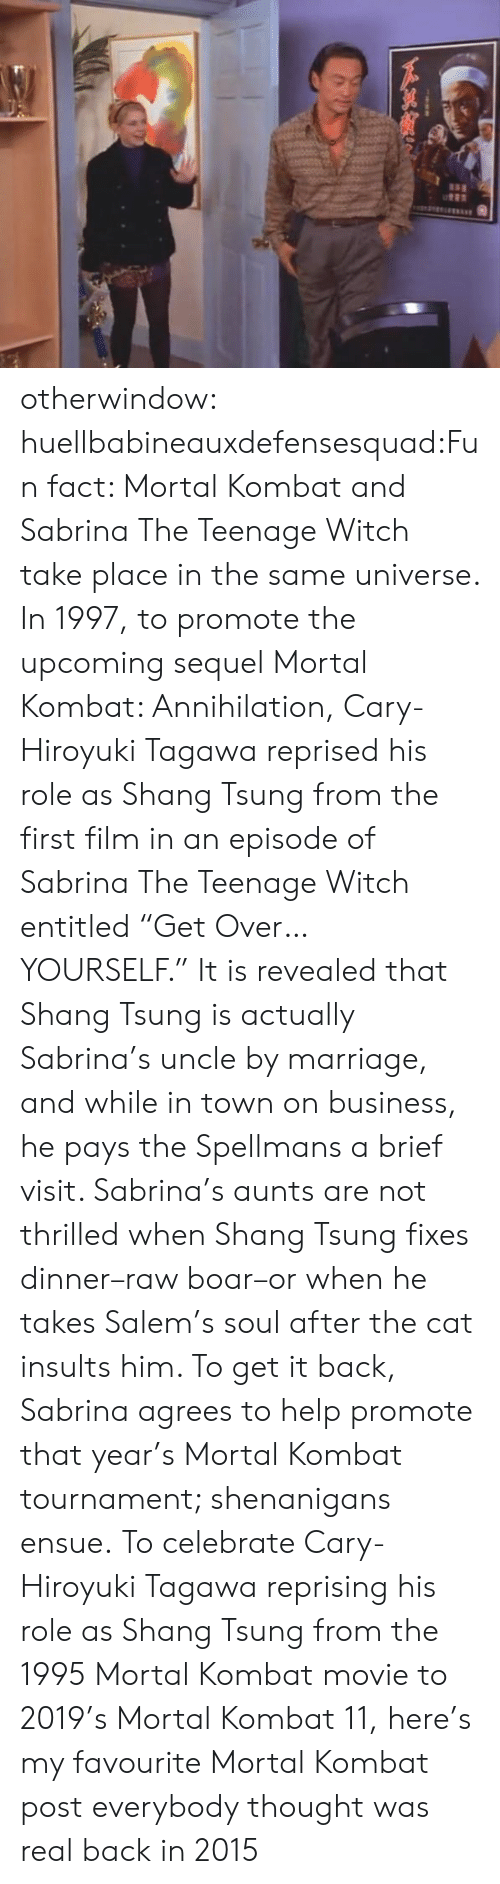 "Marriage, Mortal Kombat, and Sabrina, the Teenage Witch: otherwindow:  huellbabineauxdefensesquad:Fun fact: Mortal Kombat and Sabrina The Teenage Witch take place in the same universe. In 1997, to promote the upcoming sequel Mortal Kombat: Annihilation, Cary-Hiroyuki Tagawa reprised his role as Shang Tsung from the first film in an episode of Sabrina The Teenage Witch entitled ""Get Over… YOURSELF."" It is revealed that Shang Tsung is actually Sabrina's uncle by marriage, and while in town on business, he pays the Spellmans a brief visit. Sabrina's aunts are not thrilled when Shang Tsung fixes dinner–raw boar–or when he takes Salem's soul after the cat insults him. To get it back, Sabrina agrees to help promote that year's Mortal Kombat tournament; shenanigans ensue.   To celebrate Cary-Hiroyuki Tagawa reprising his role as Shang Tsung from the 1995 Mortal Kombat movie to 2019's Mortal Kombat 11, here's my favourite Mortal Kombat post everybody thought was real back in 2015"